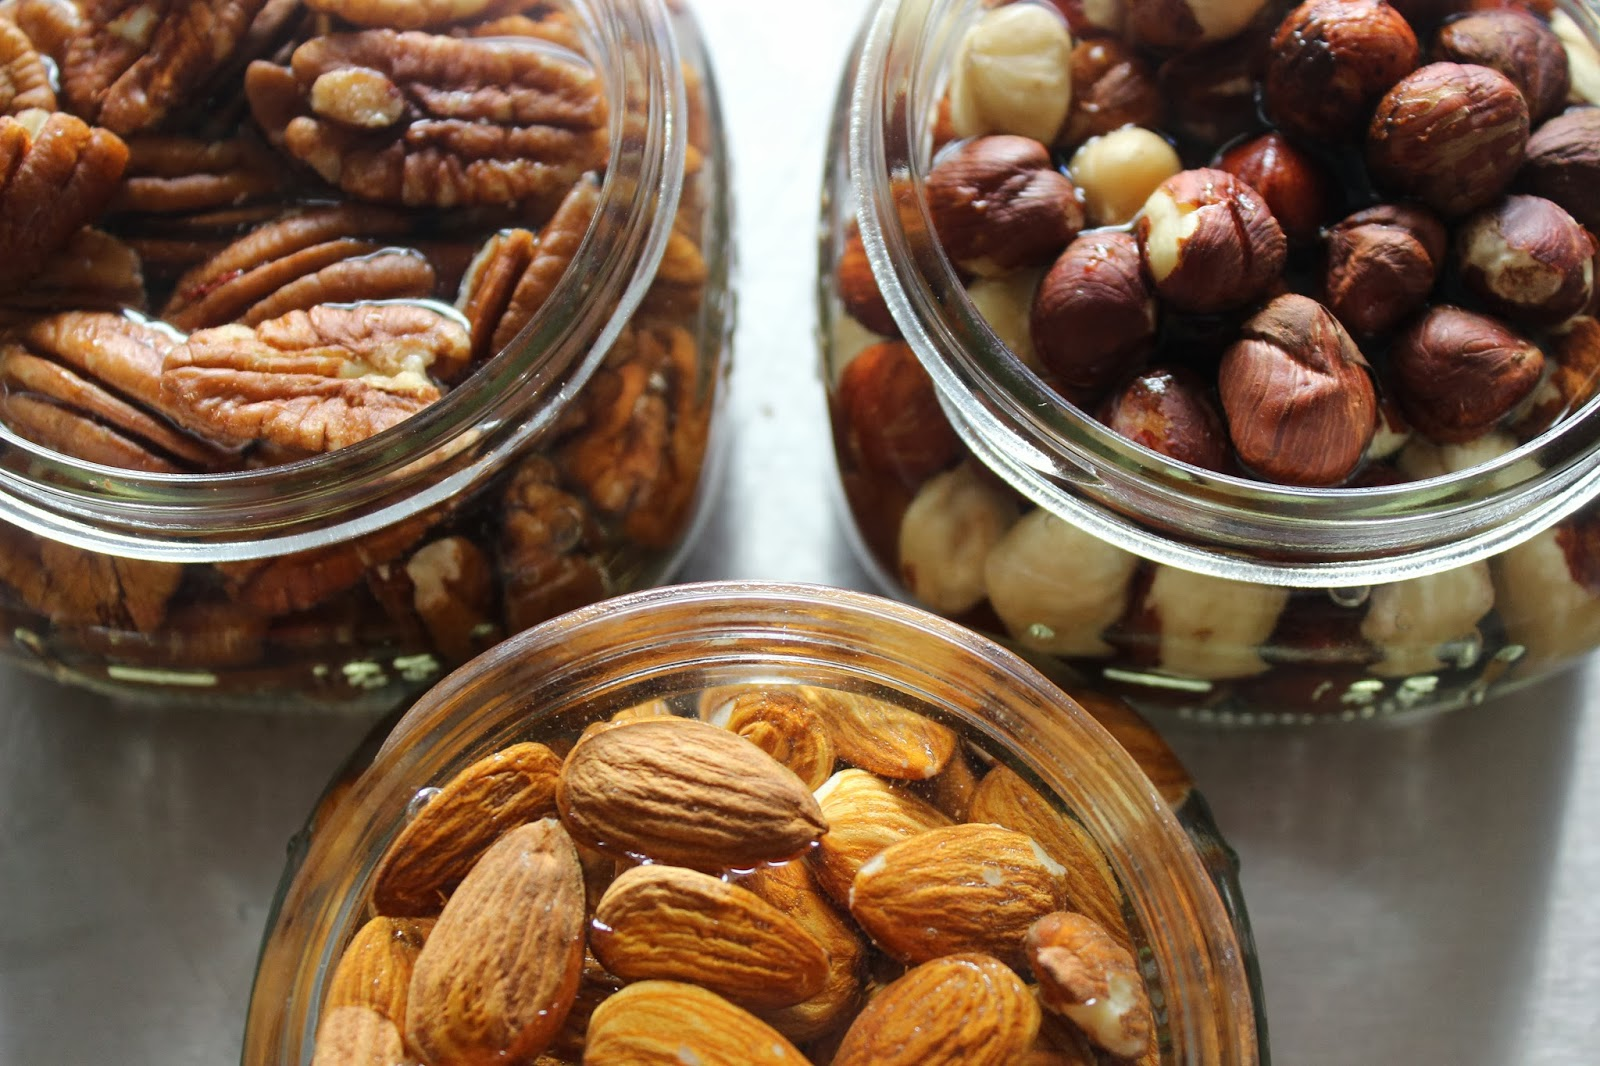 10 Surprisingly Healthy Foods High In Calories - Nuts and Seeds